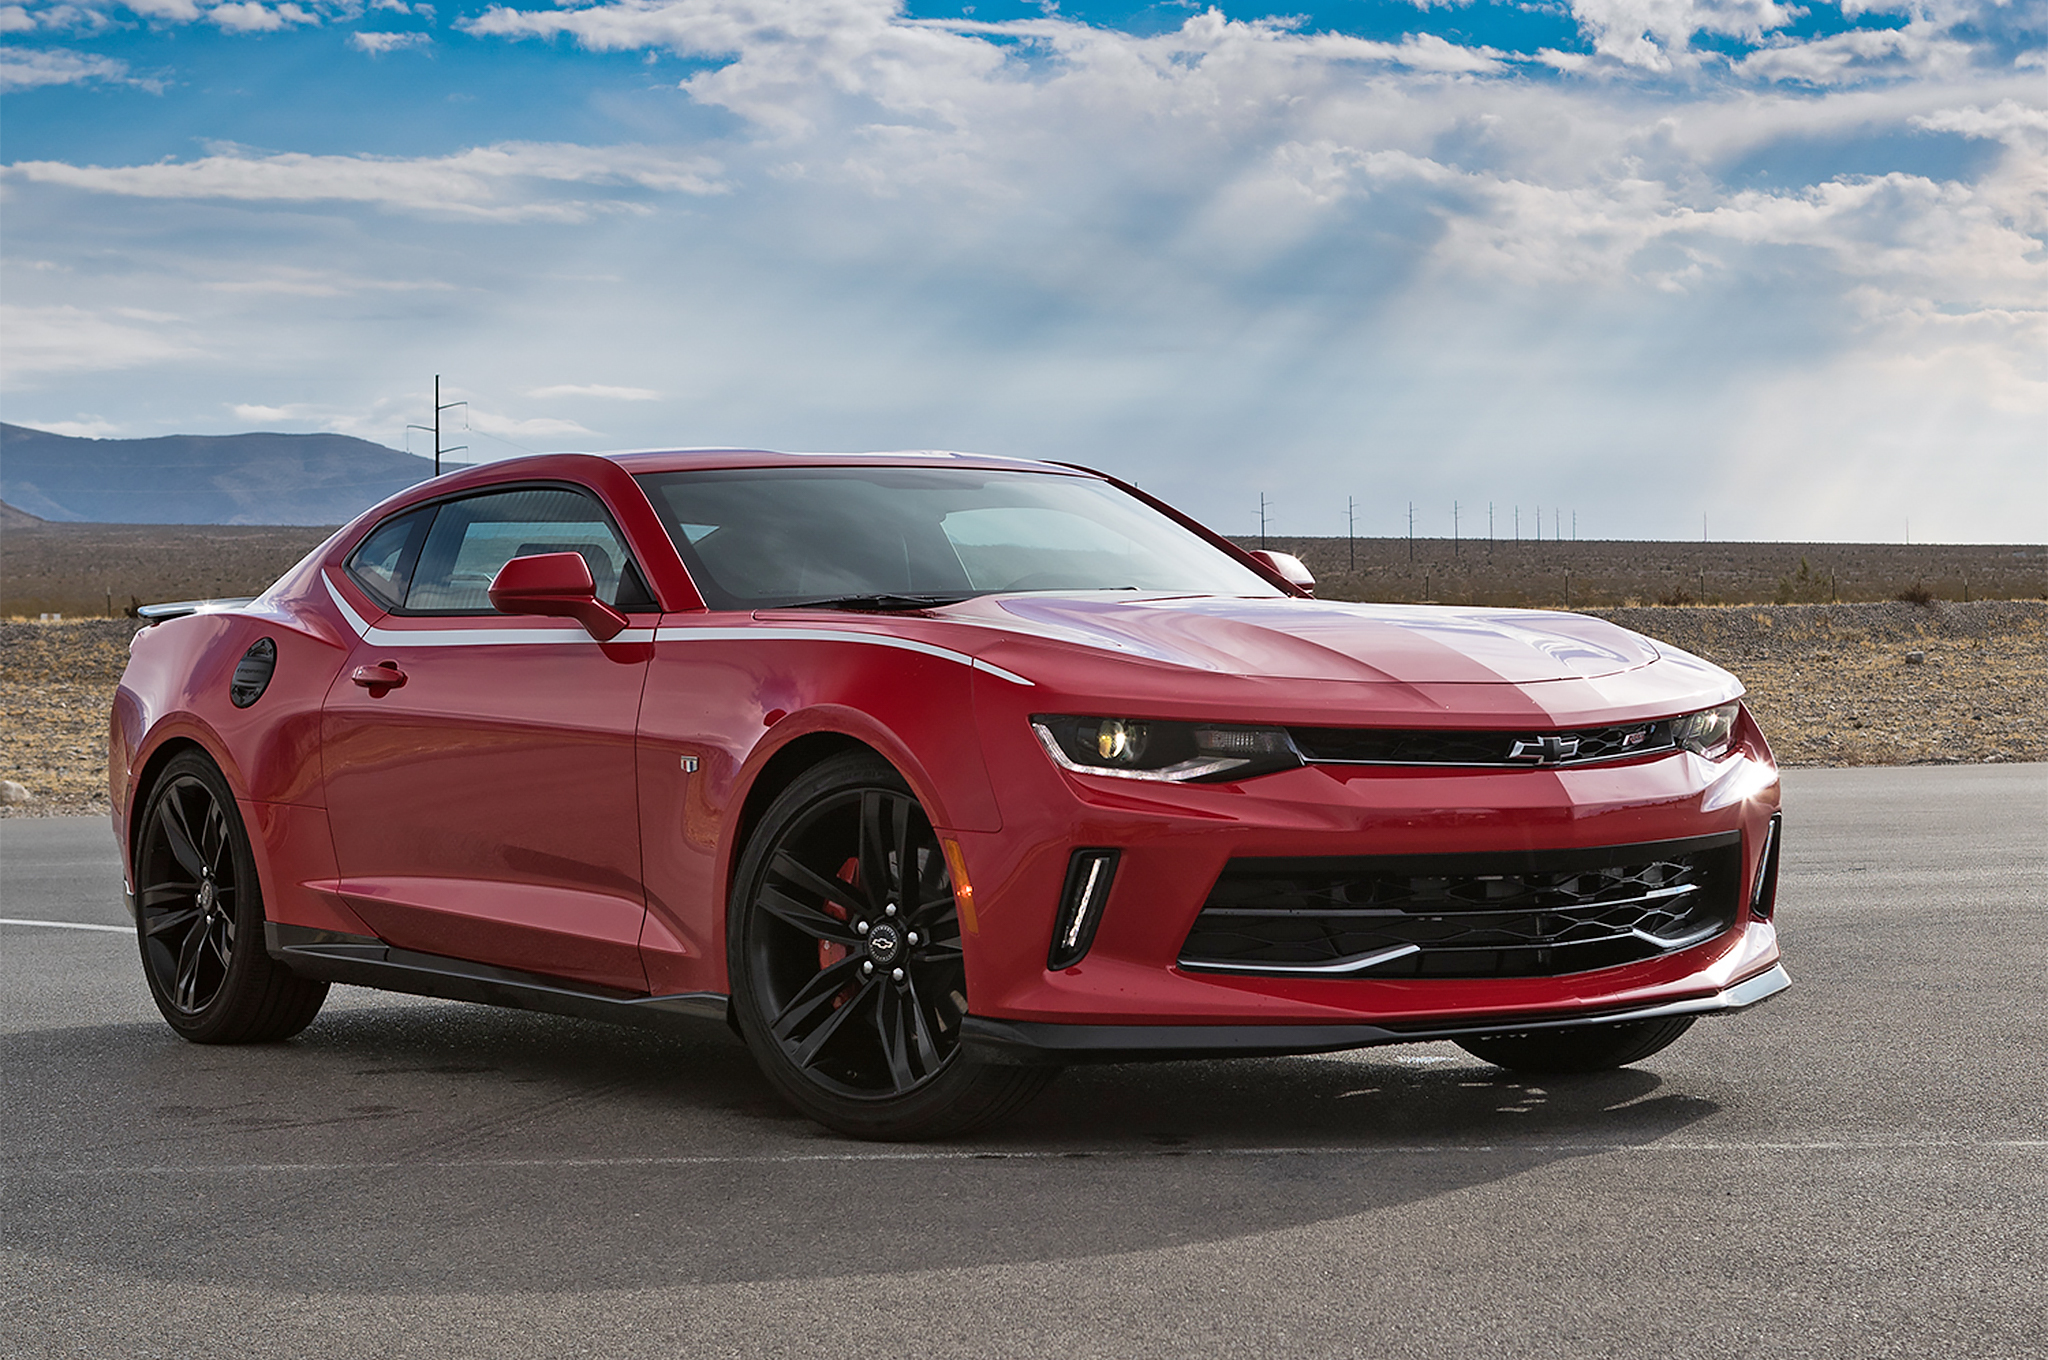 2017 Chevrolet Camaro for Sale near Independence, MO